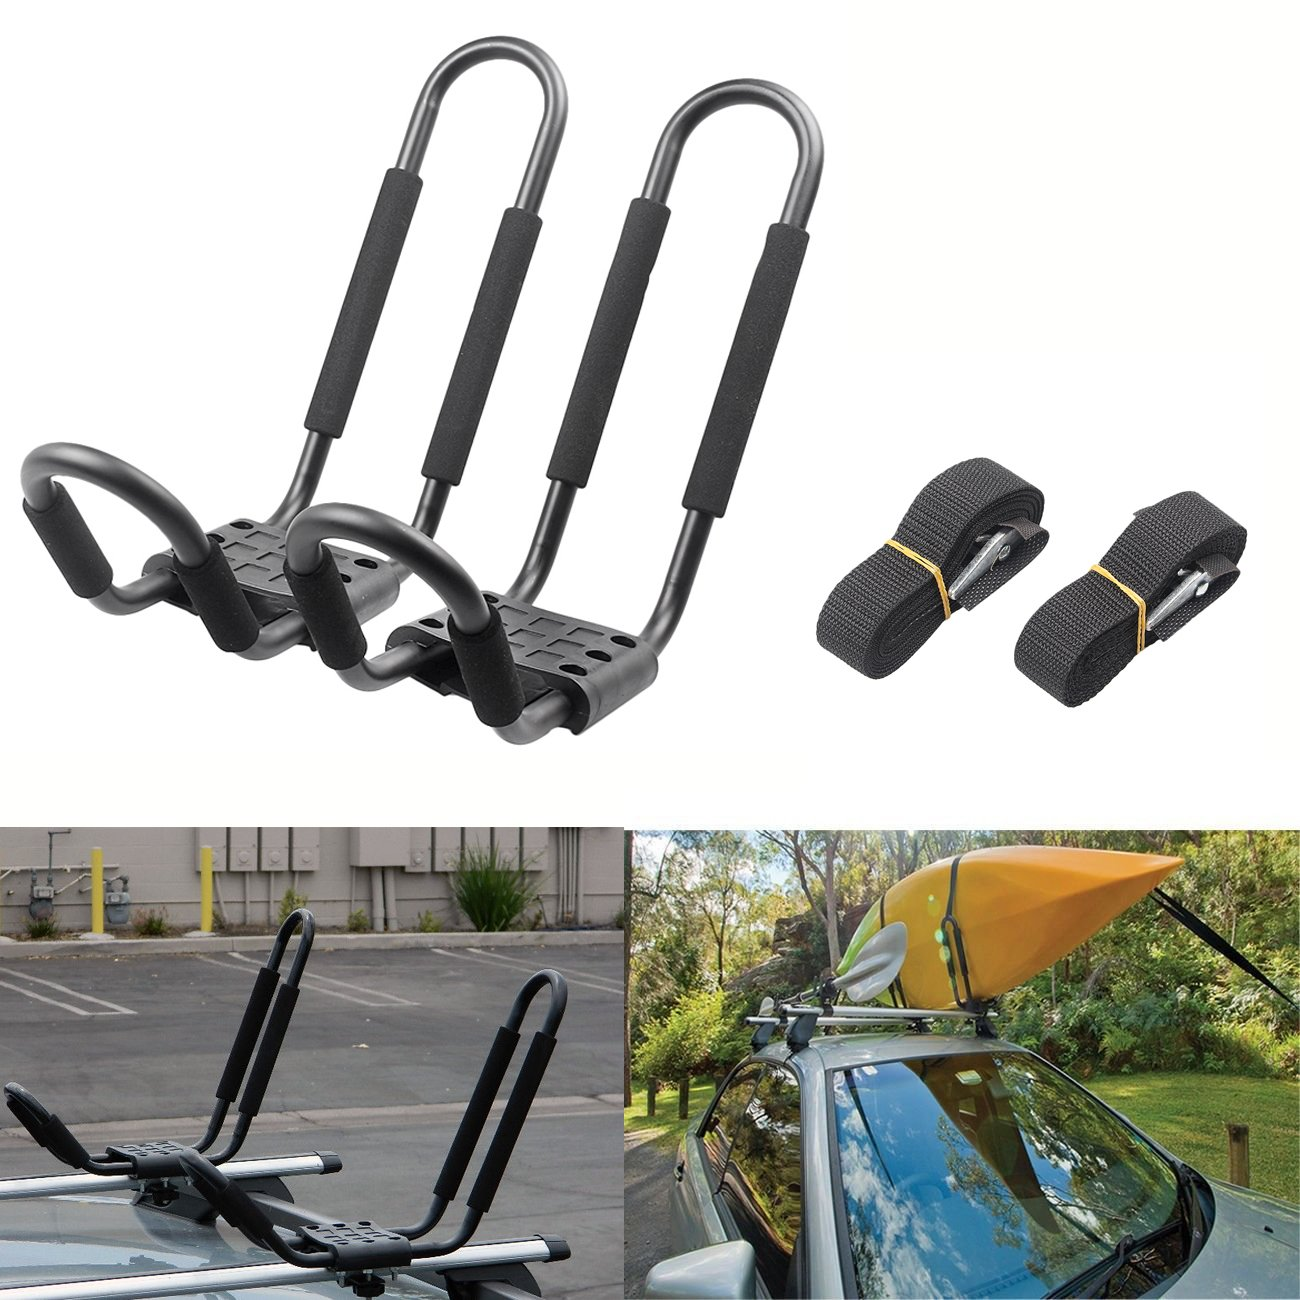 Gzyf Pair Universal Kayak Roof Rack Carrier For Car Boat